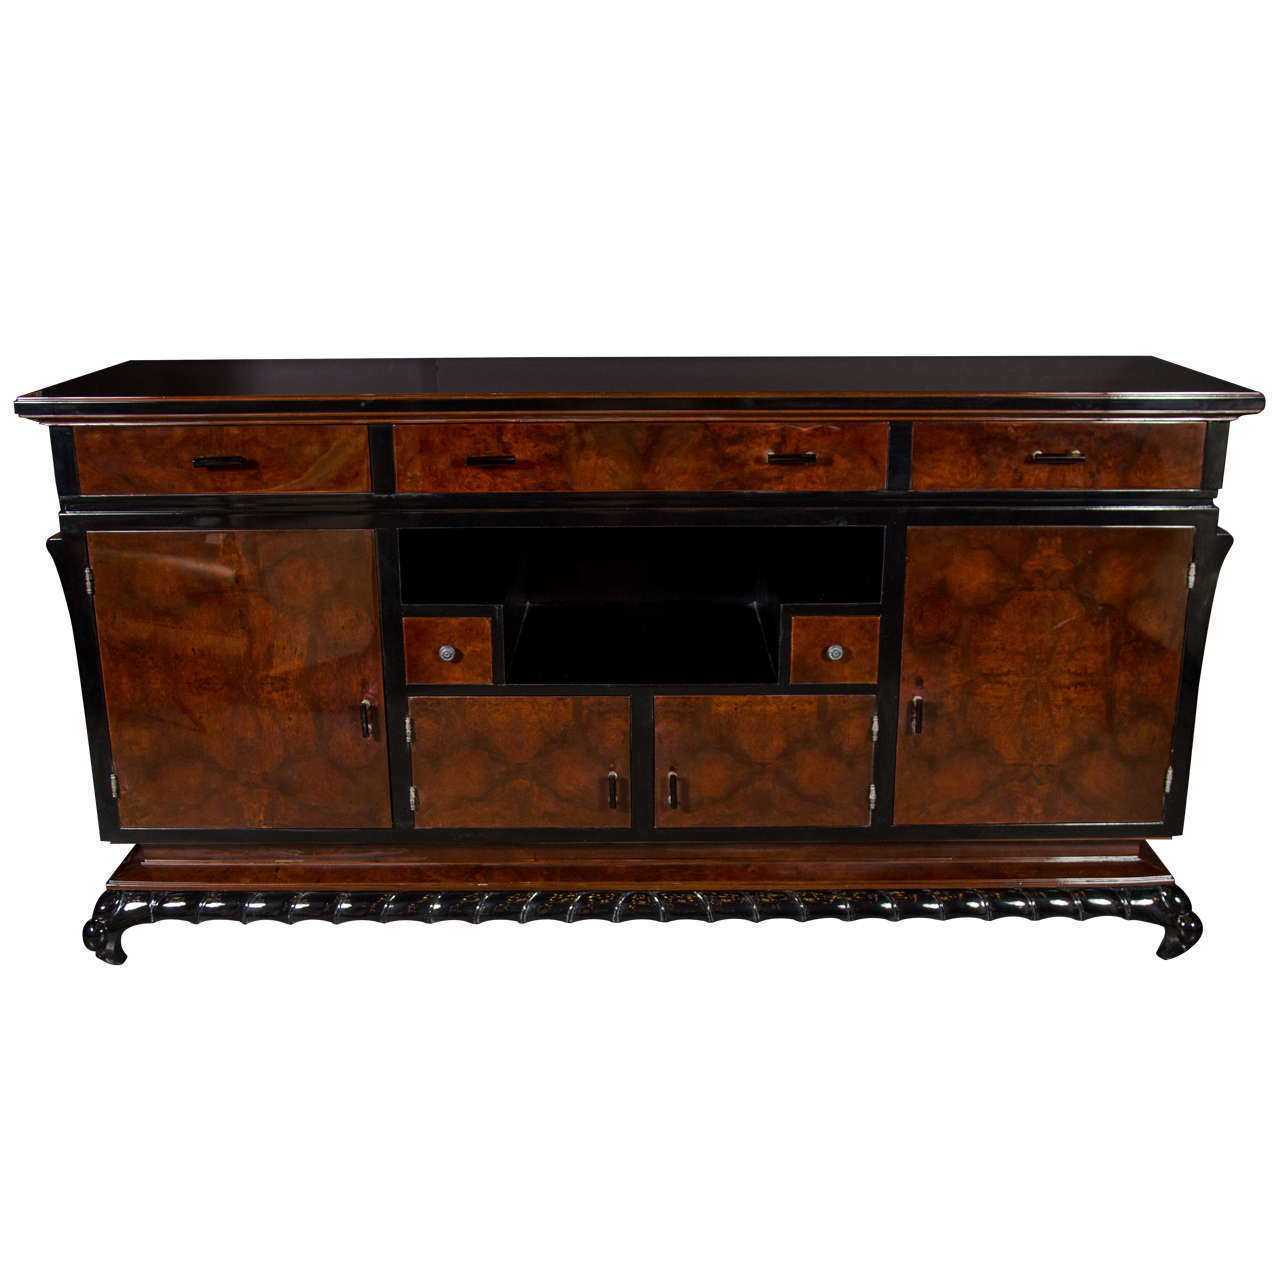 Exceptional Art Deco Sideboard in Bookmatched Burl Walnut and Central Niche